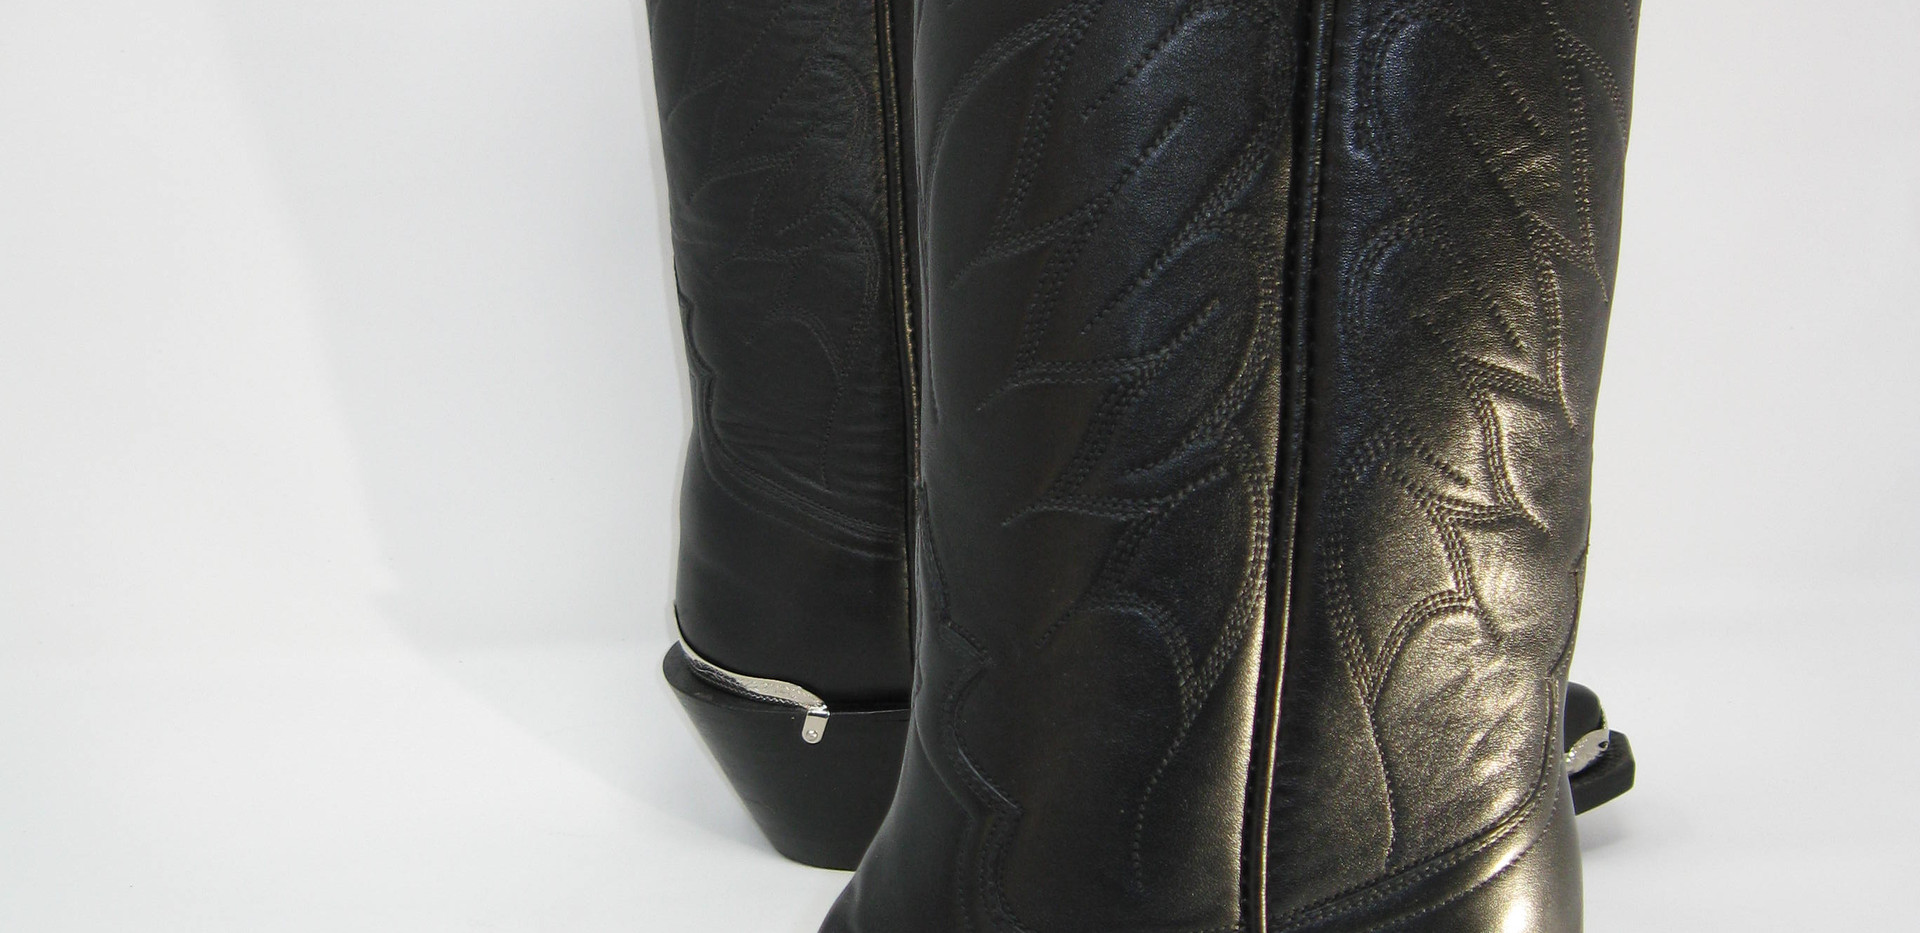 Same boots with silver tips and heel guards.